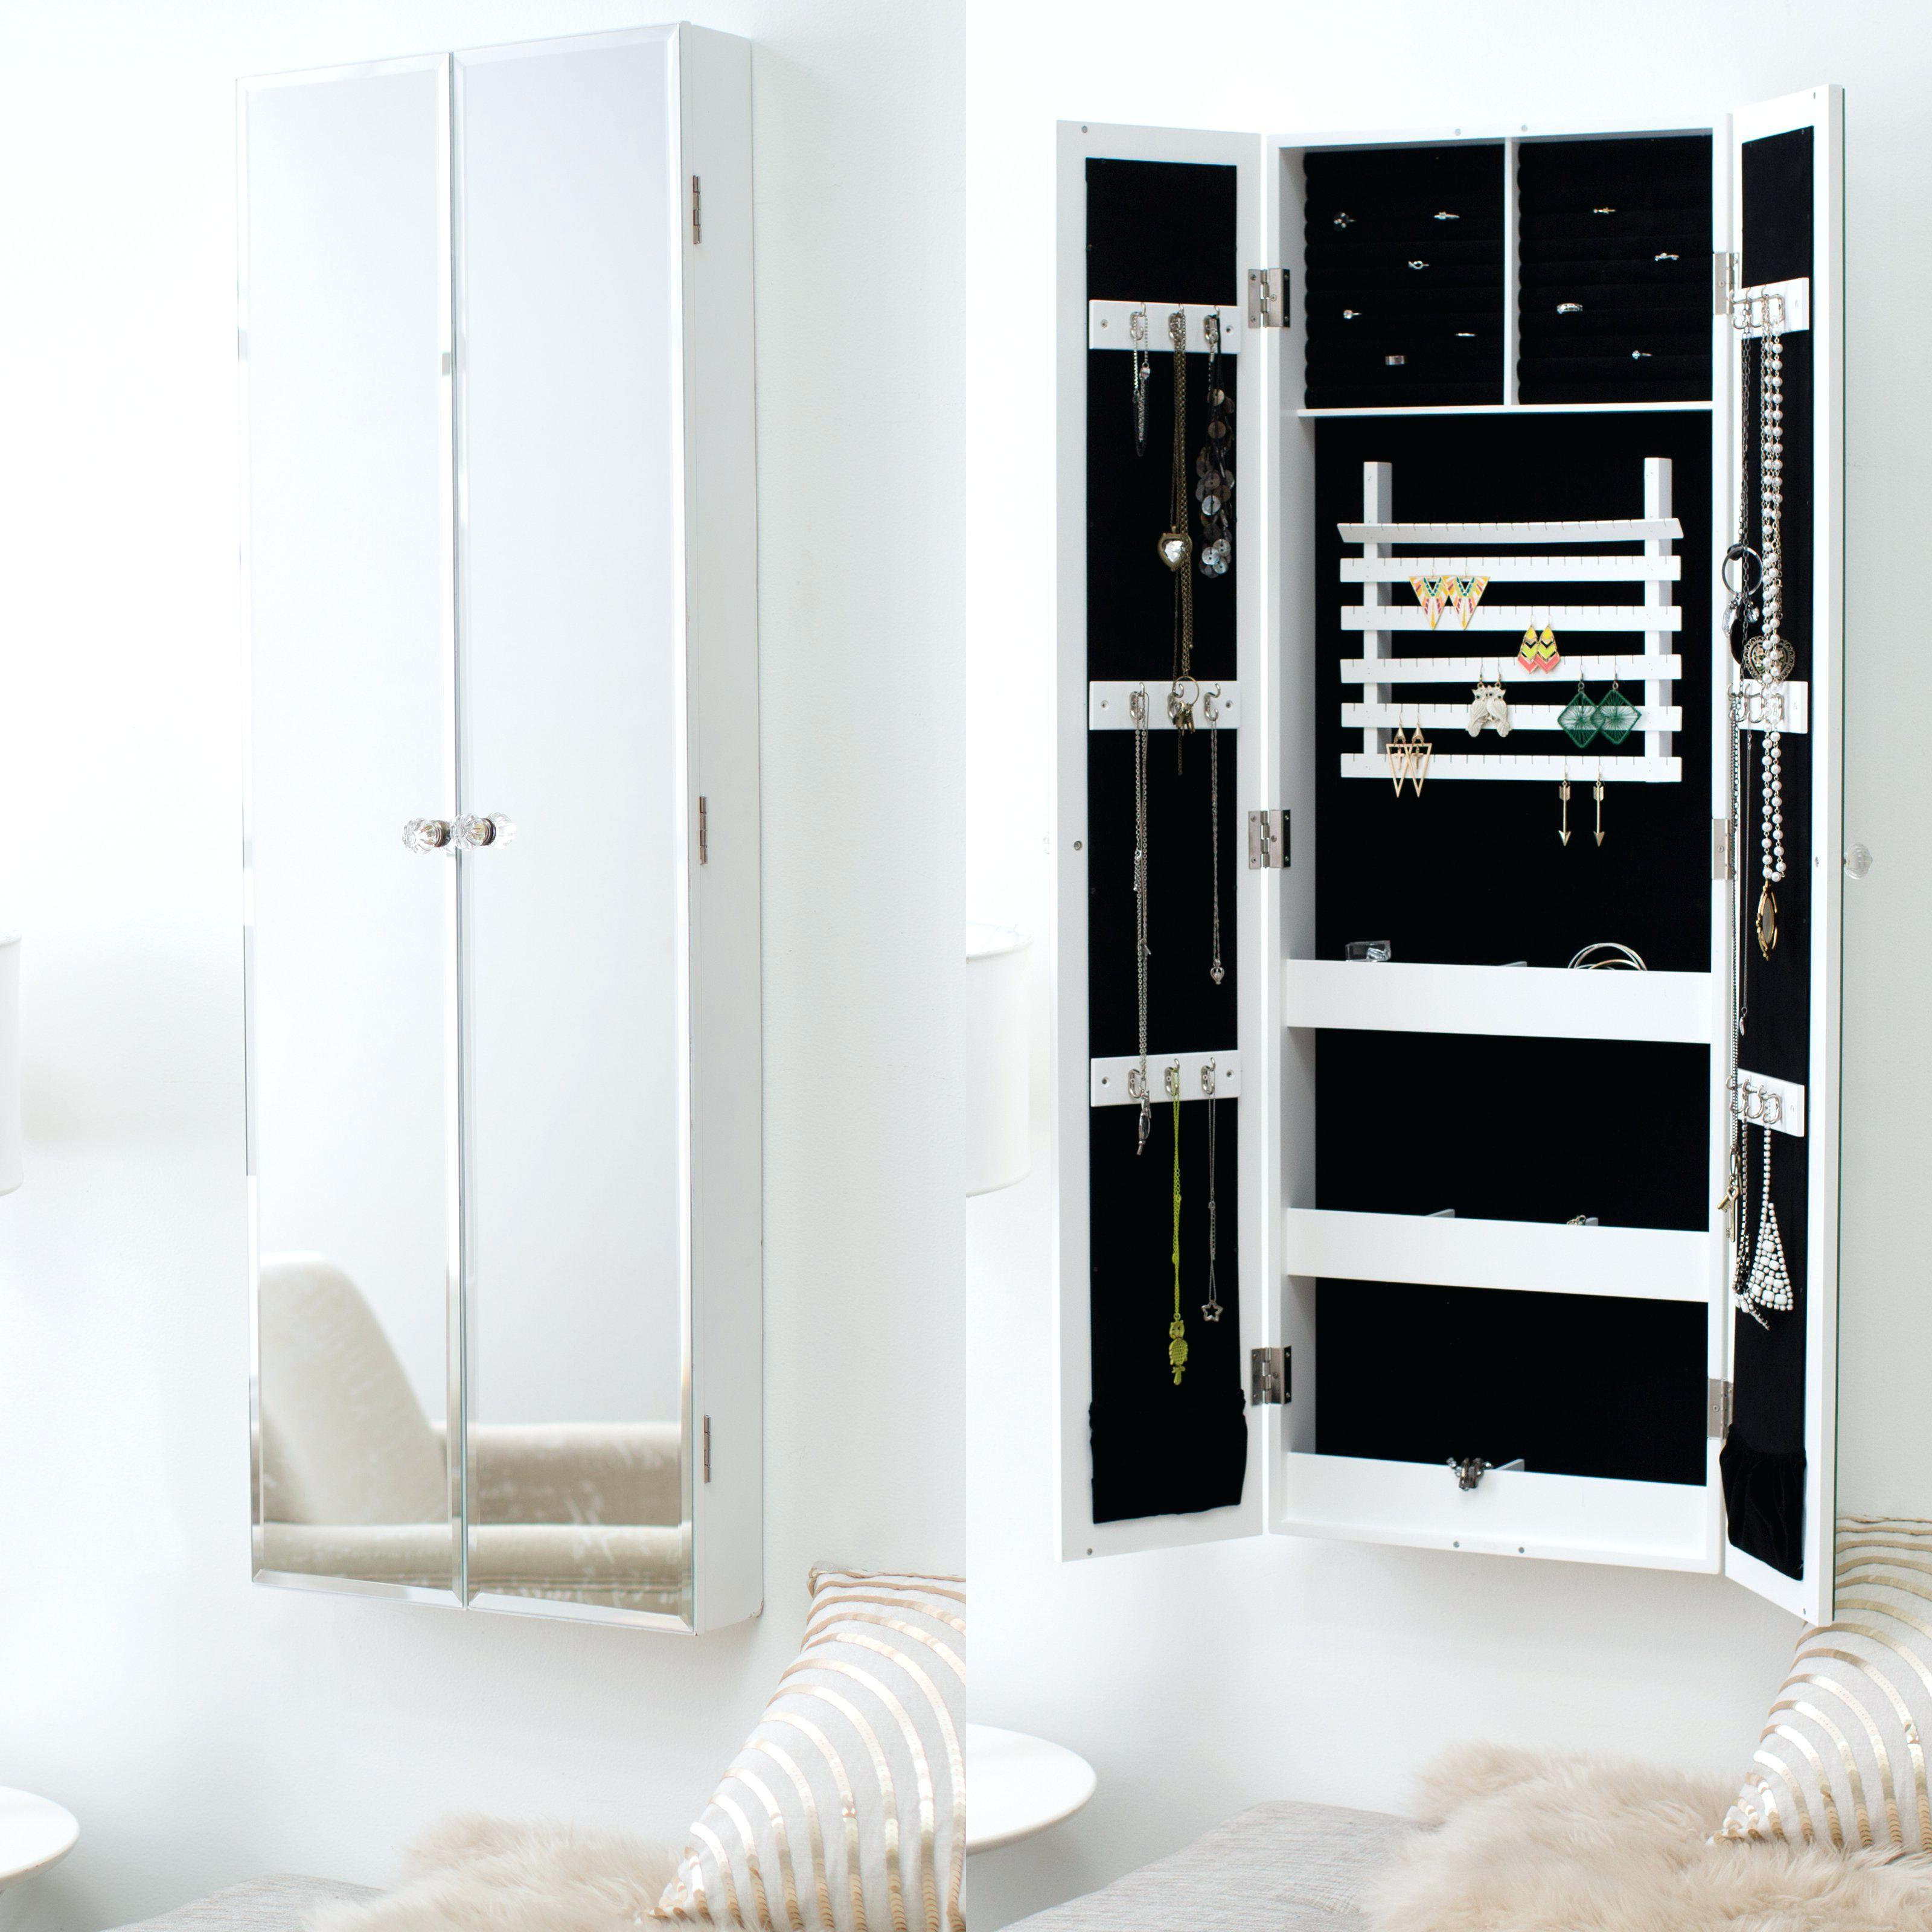 Image of: 36 Innovative Hidden Wall Mount Jewelry Armoire That Will Leave You Speechless In 2020 Awesome Pictures Decoratorist